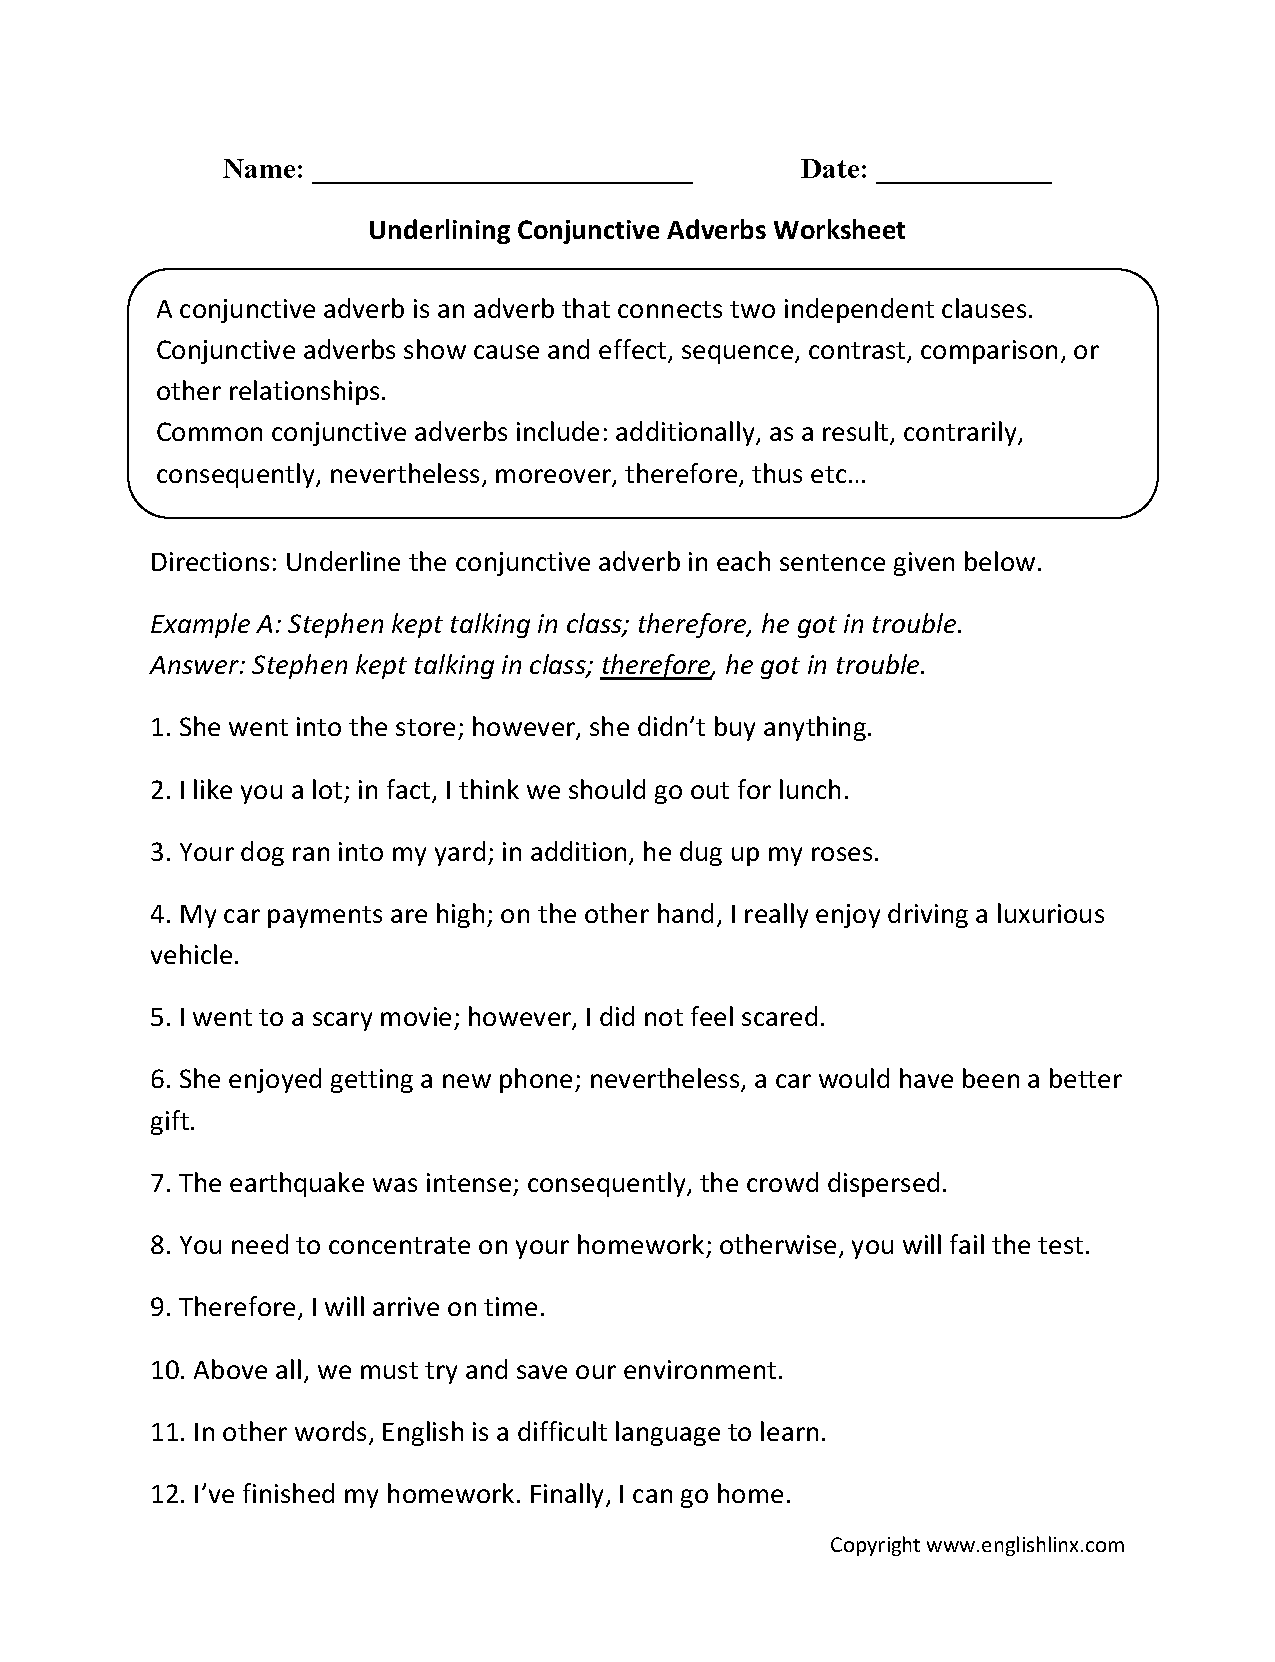 Weirdmailus  Splendid Englishlinxcom  Conjunctions Worksheets With Marvelous Worksheet With Easy On The Eye Creating Budget Worksheet Also Free Fraction Worksheets For Grade  In Addition Dictionary Worksheets For Middle School And Roy G Biv Worksheet As Well As Spelling Worksheets For Th Grade Additionally Animals And Their Food Worksheets From Englishlinxcom With Weirdmailus  Marvelous Englishlinxcom  Conjunctions Worksheets With Easy On The Eye Worksheet And Splendid Creating Budget Worksheet Also Free Fraction Worksheets For Grade  In Addition Dictionary Worksheets For Middle School From Englishlinxcom